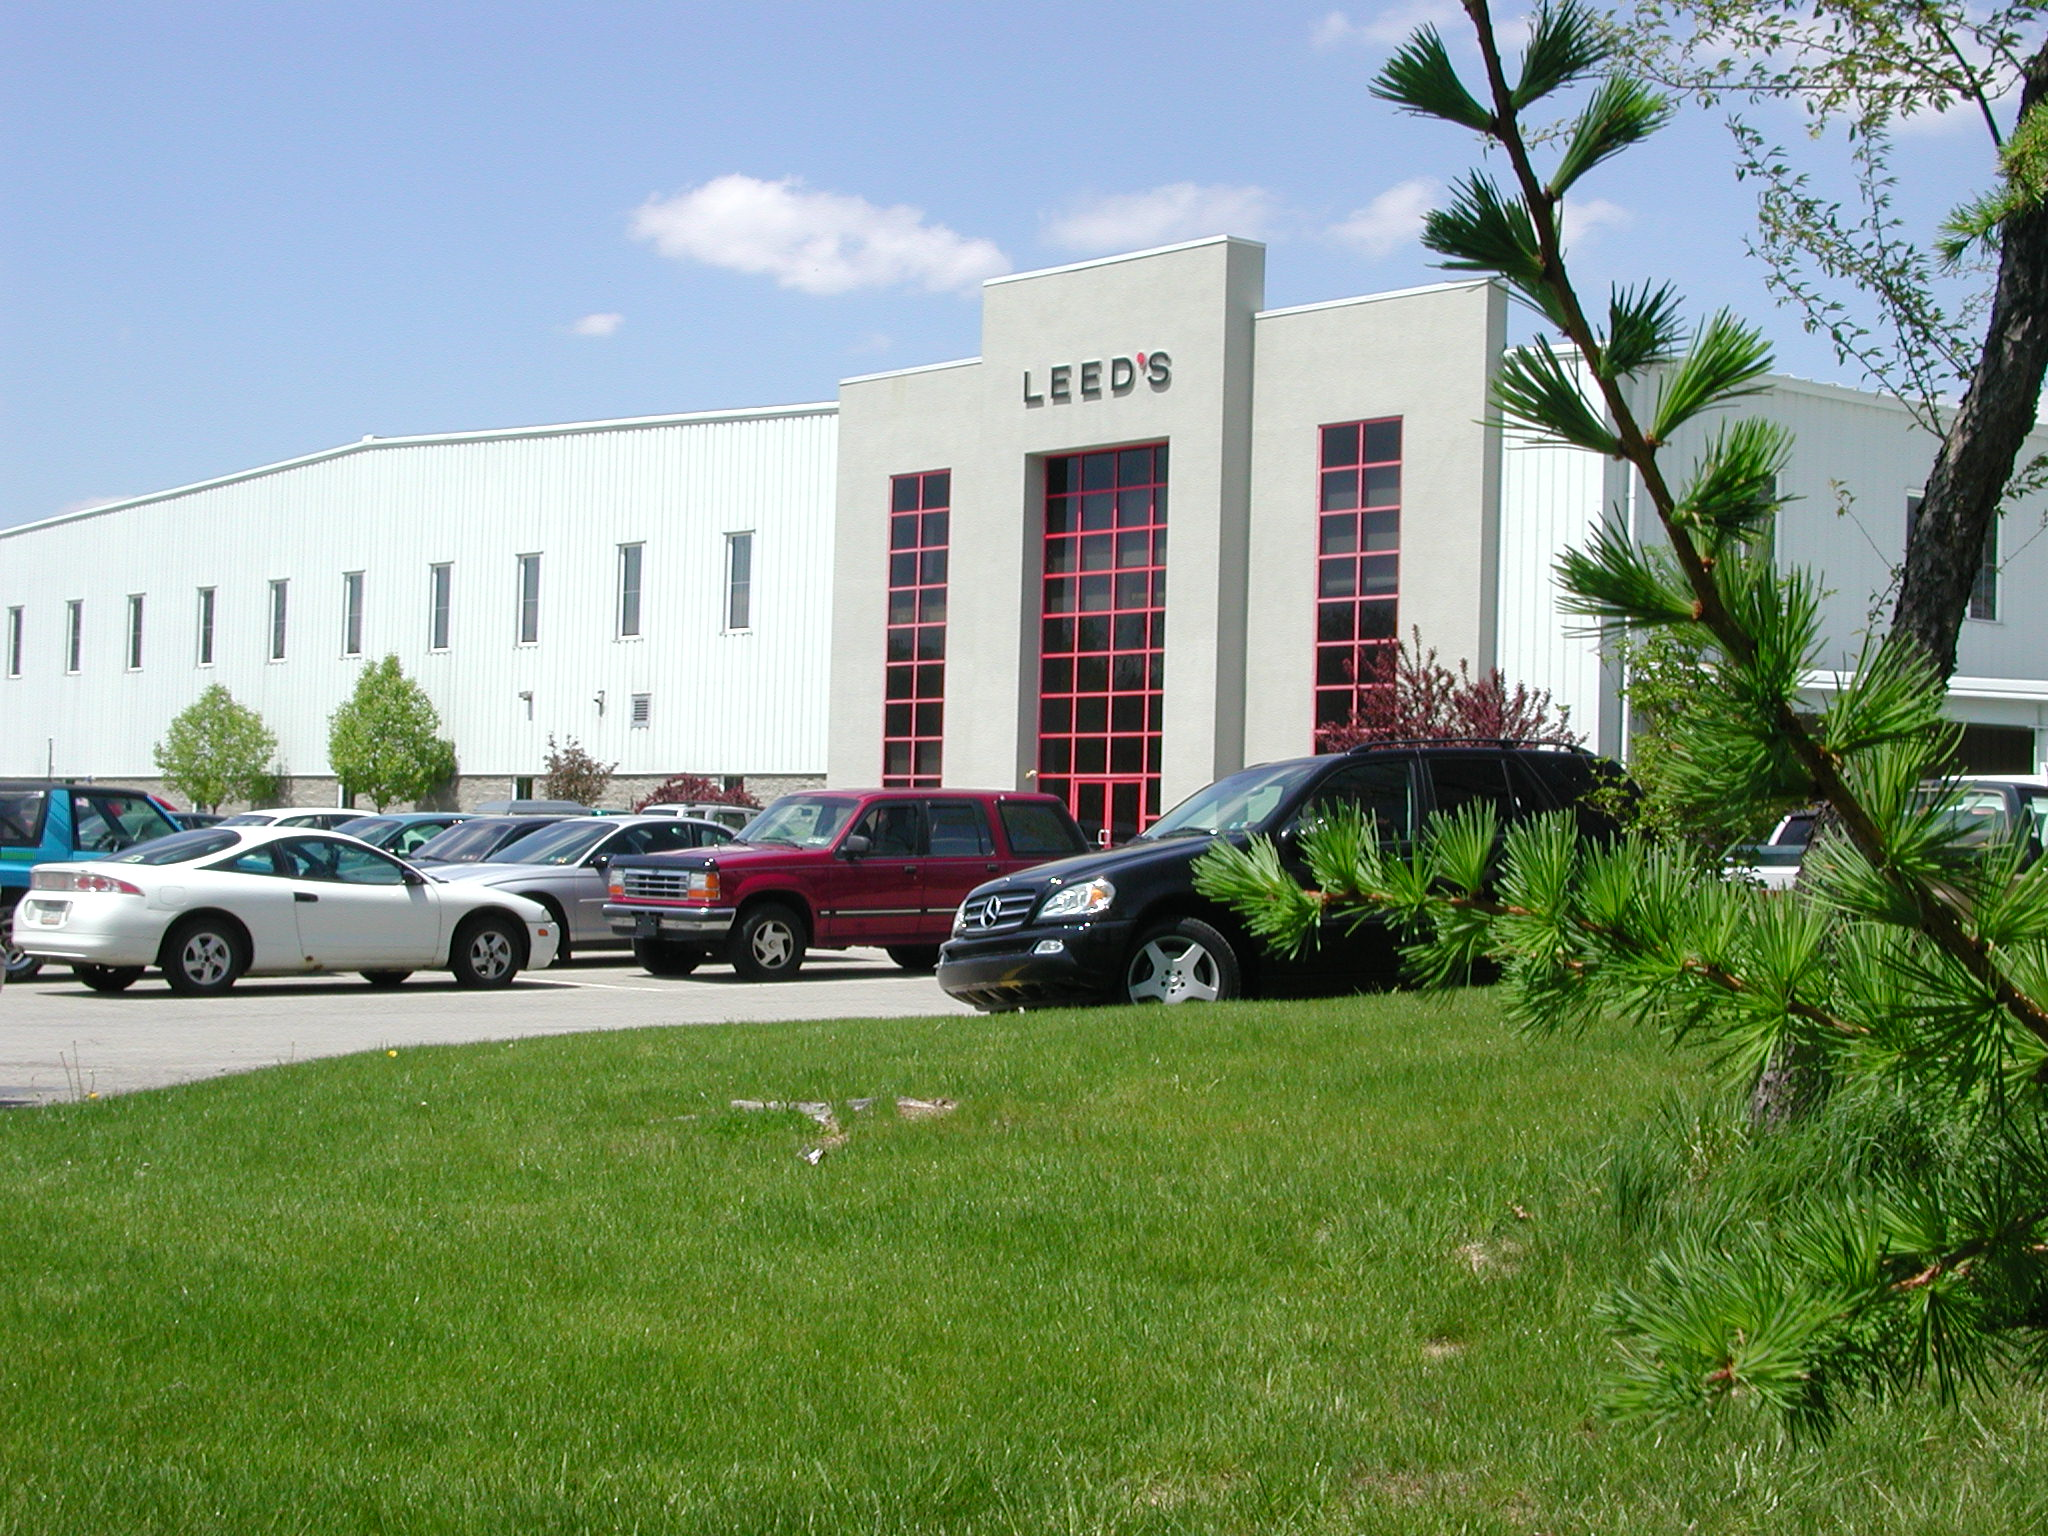 leed s announces additional expansion at the business research park leedsworld inc initial 100 000 square foot facility